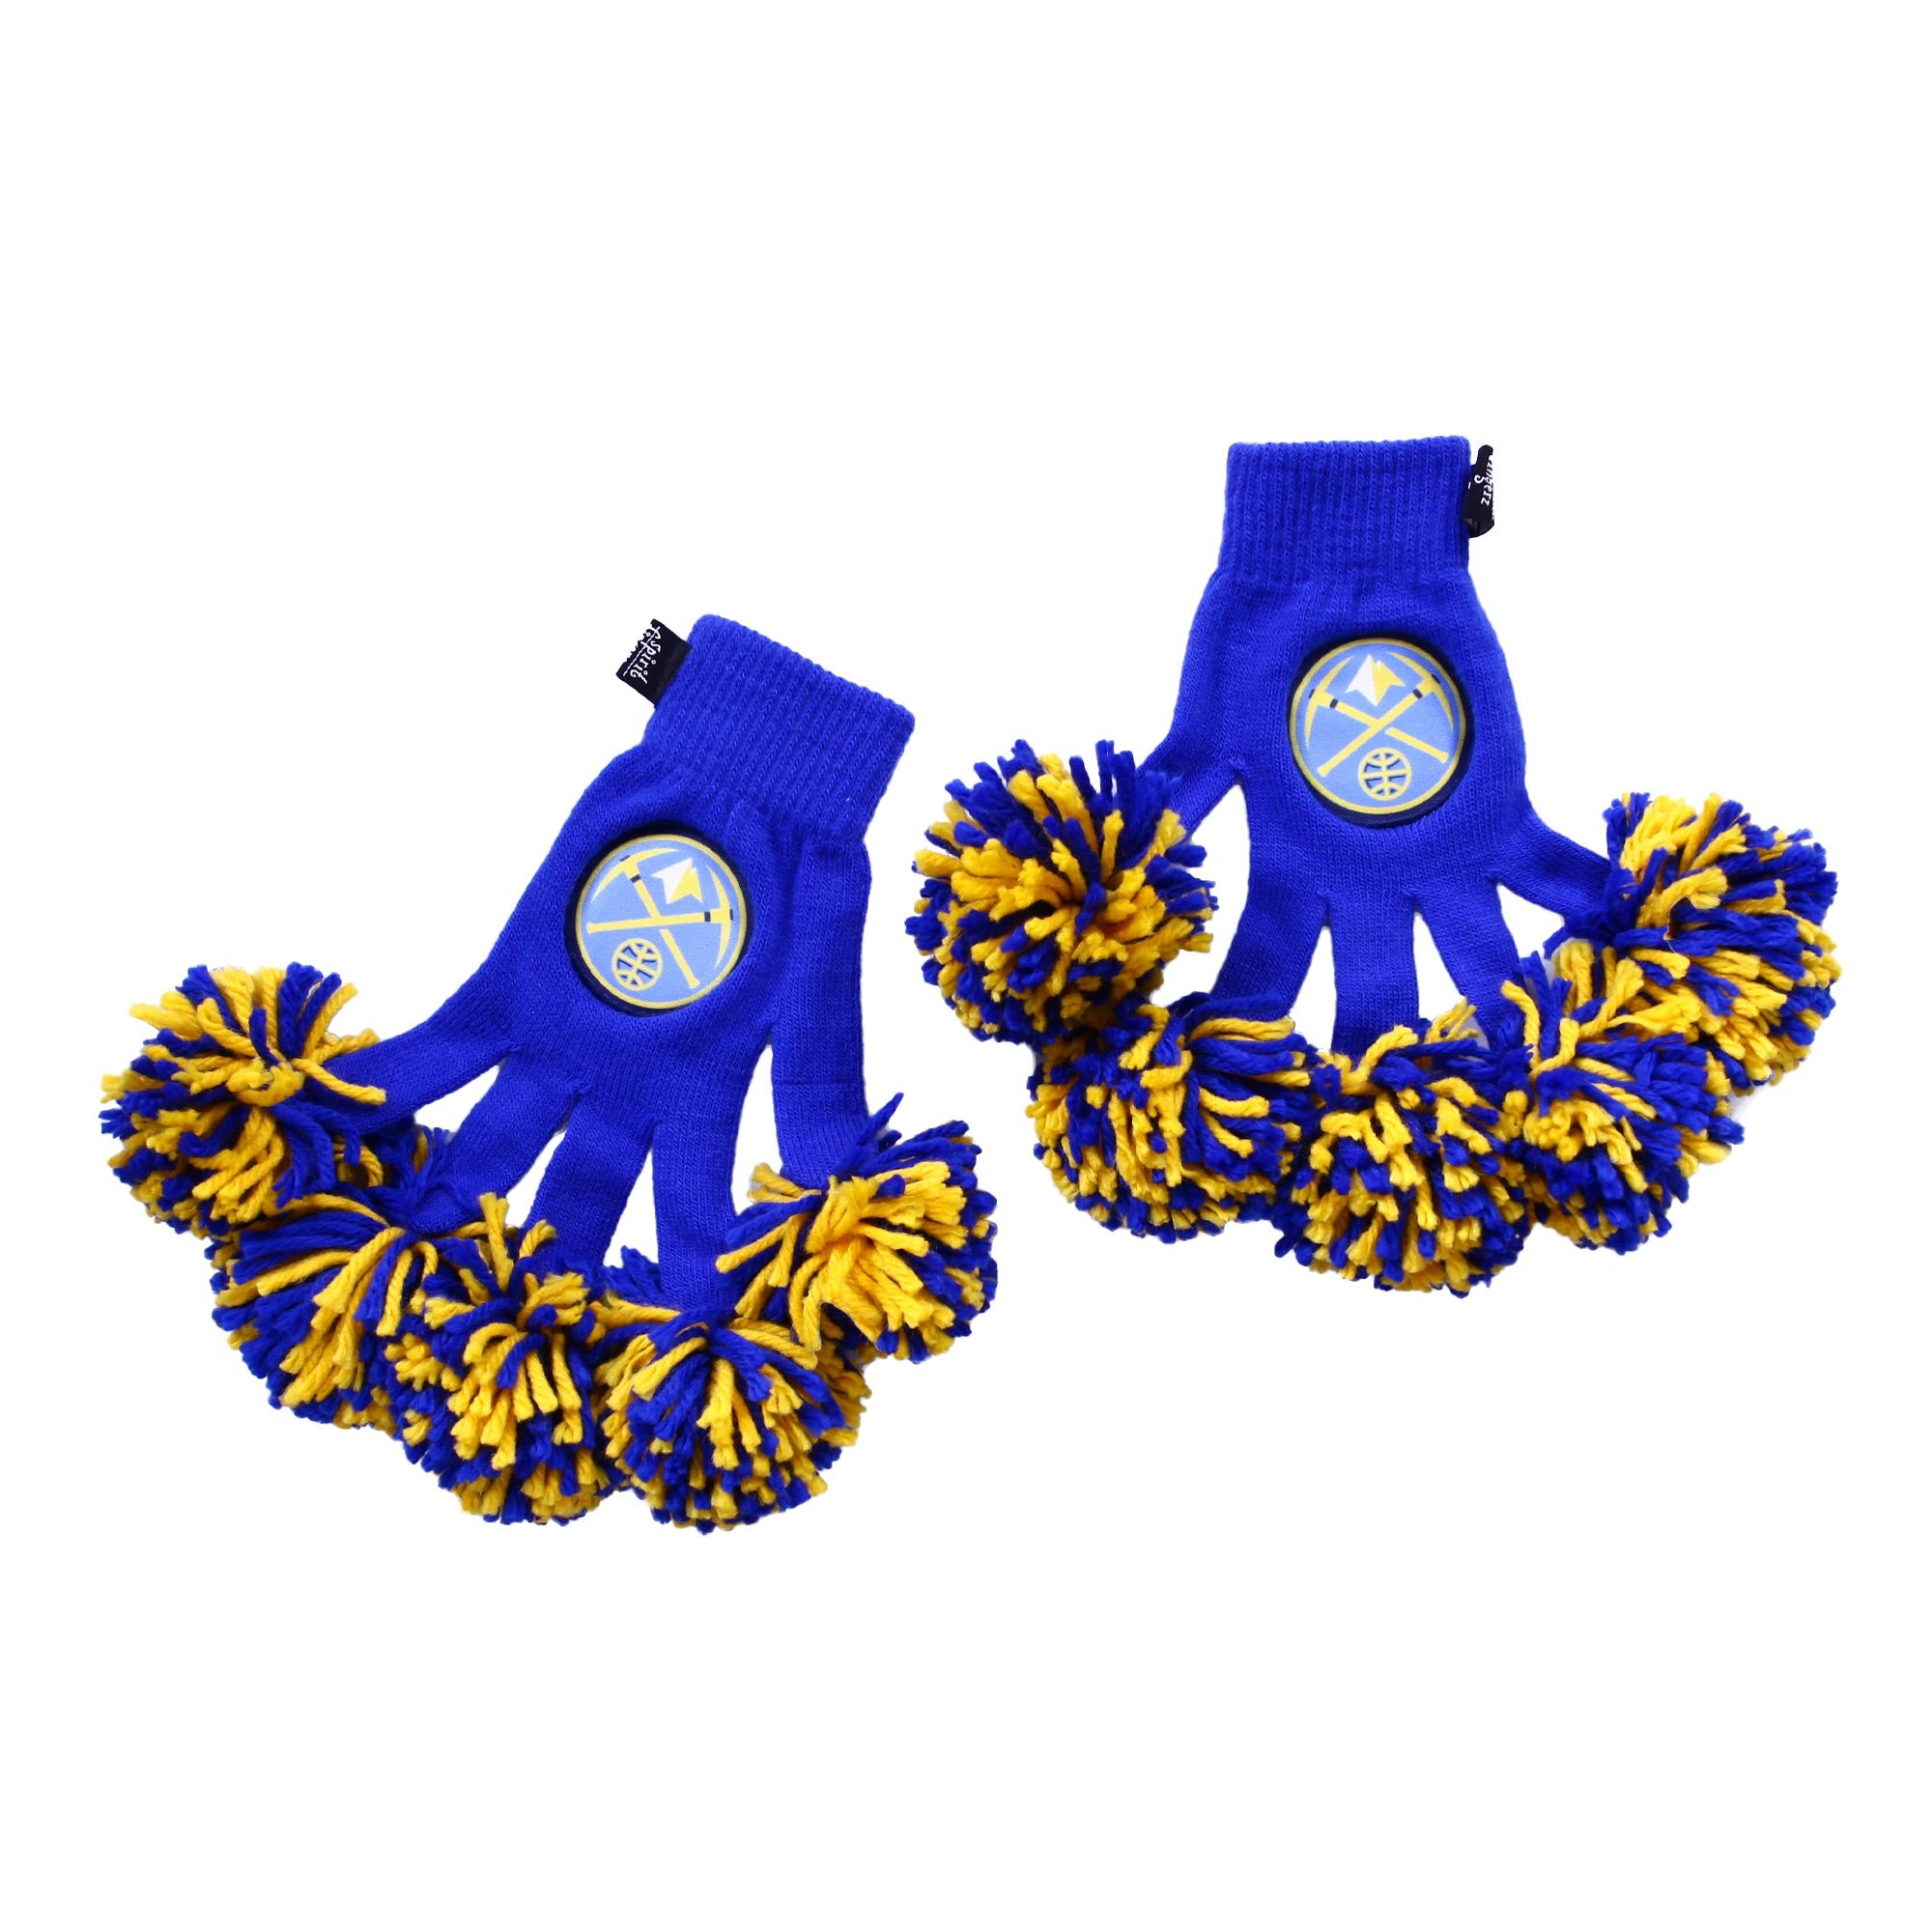 Denver Nuggets NBA Spirit Fingerz Cheerleading Pom-Pom Gloves